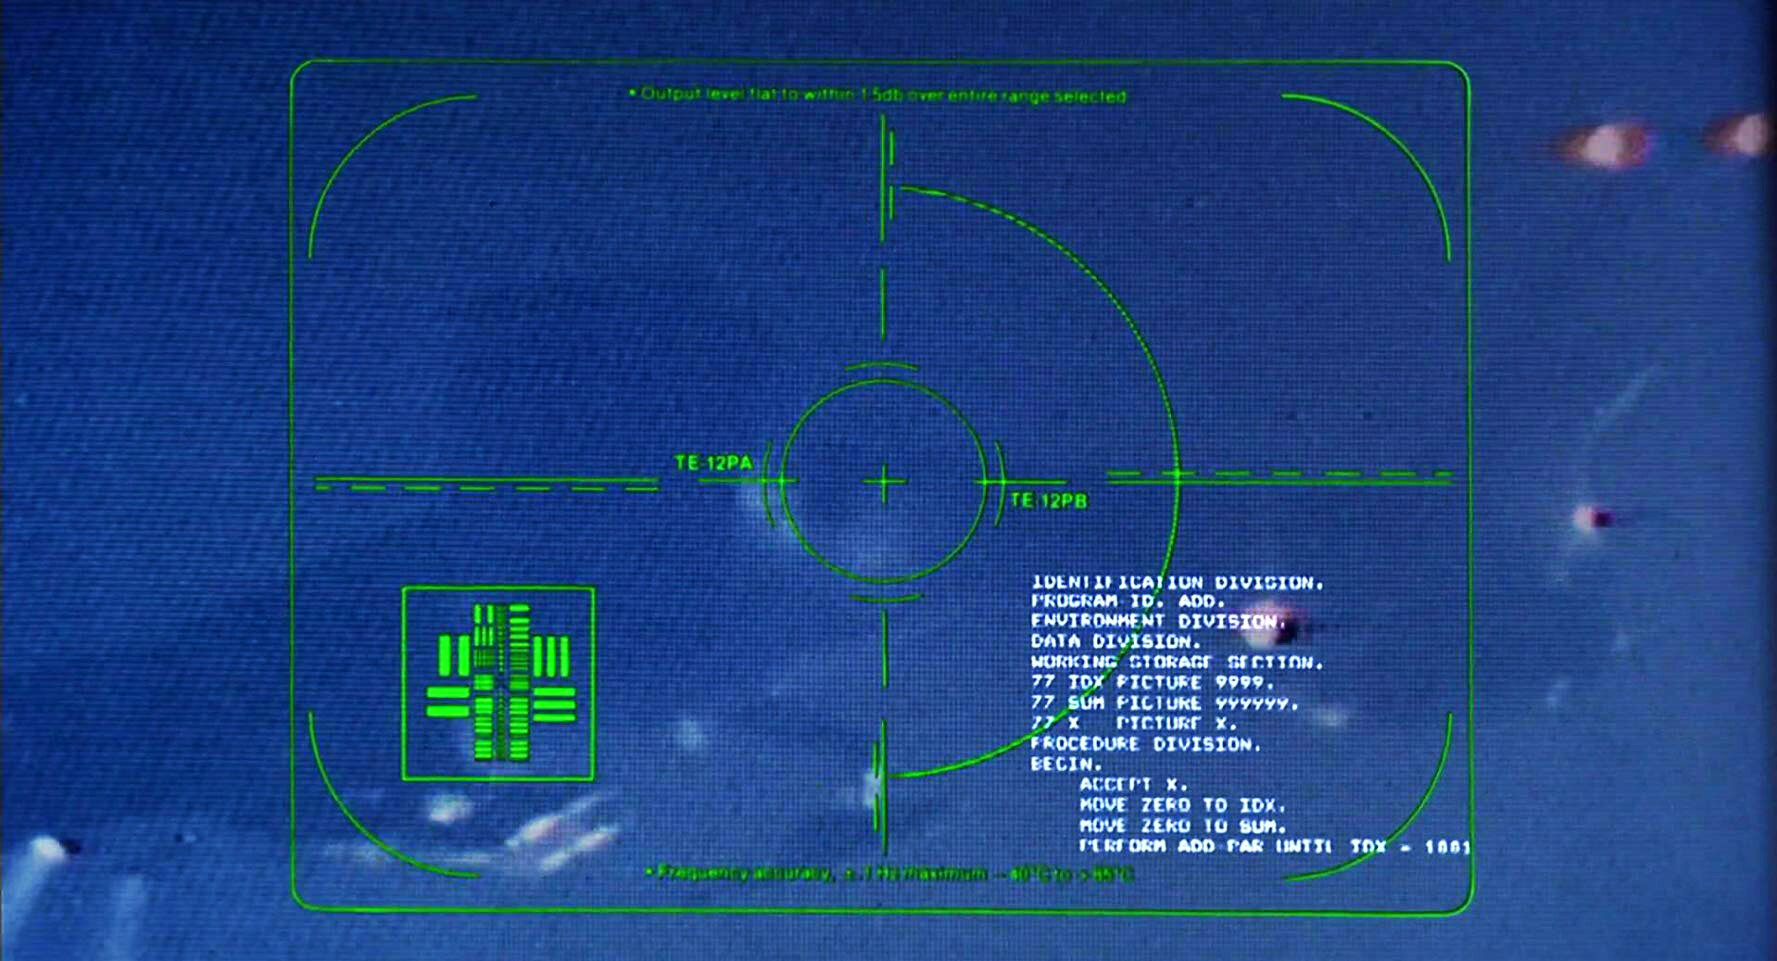 Computer readout display of HK (Hunter-Killer) machine in Future War sequence.